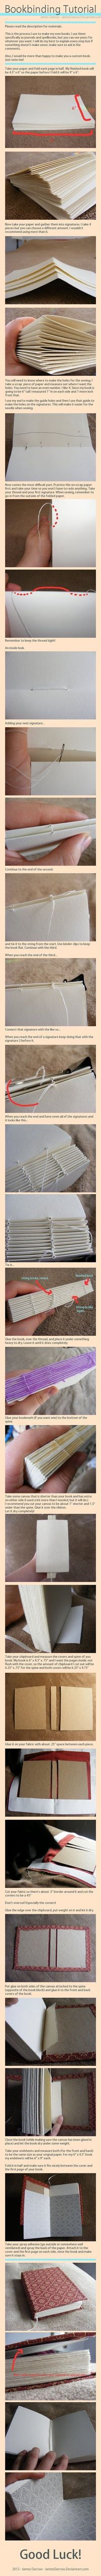 bookbinding -- how to bind your own books. Make a travel journal?